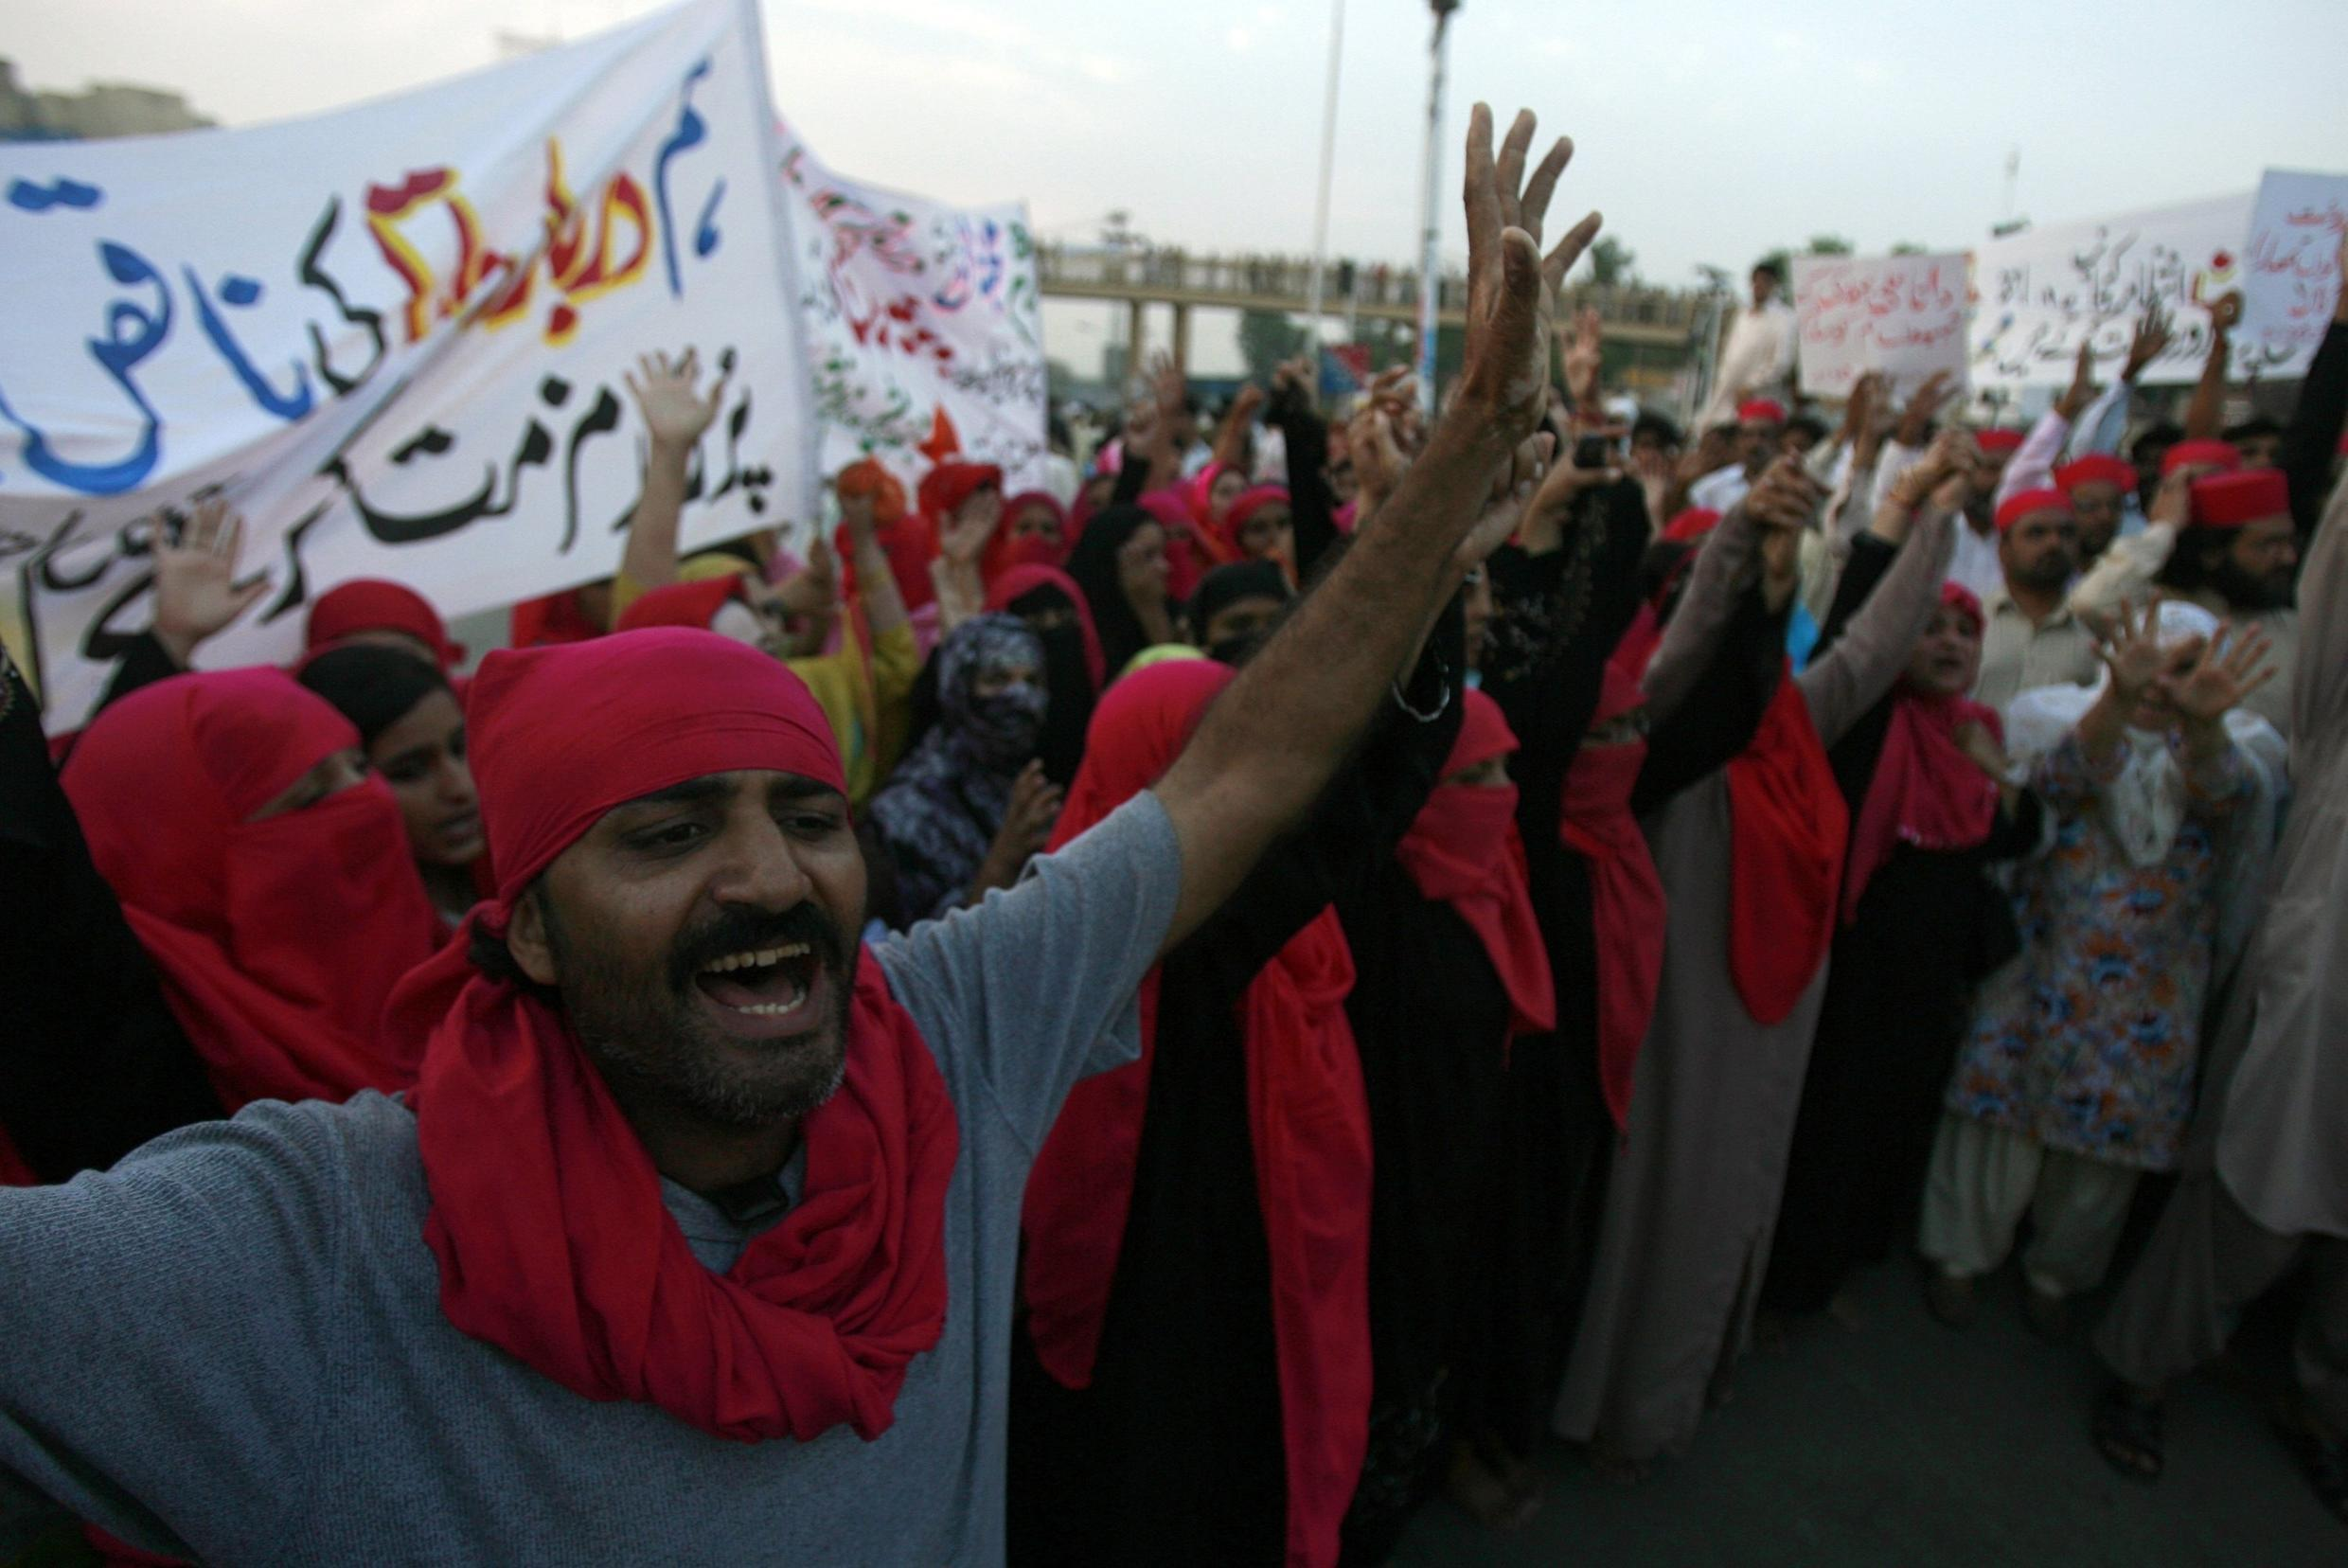 People march through the streets of Lahore to condemn the multiple suicide bomb attacks at the Data Darbar Sufi shrine